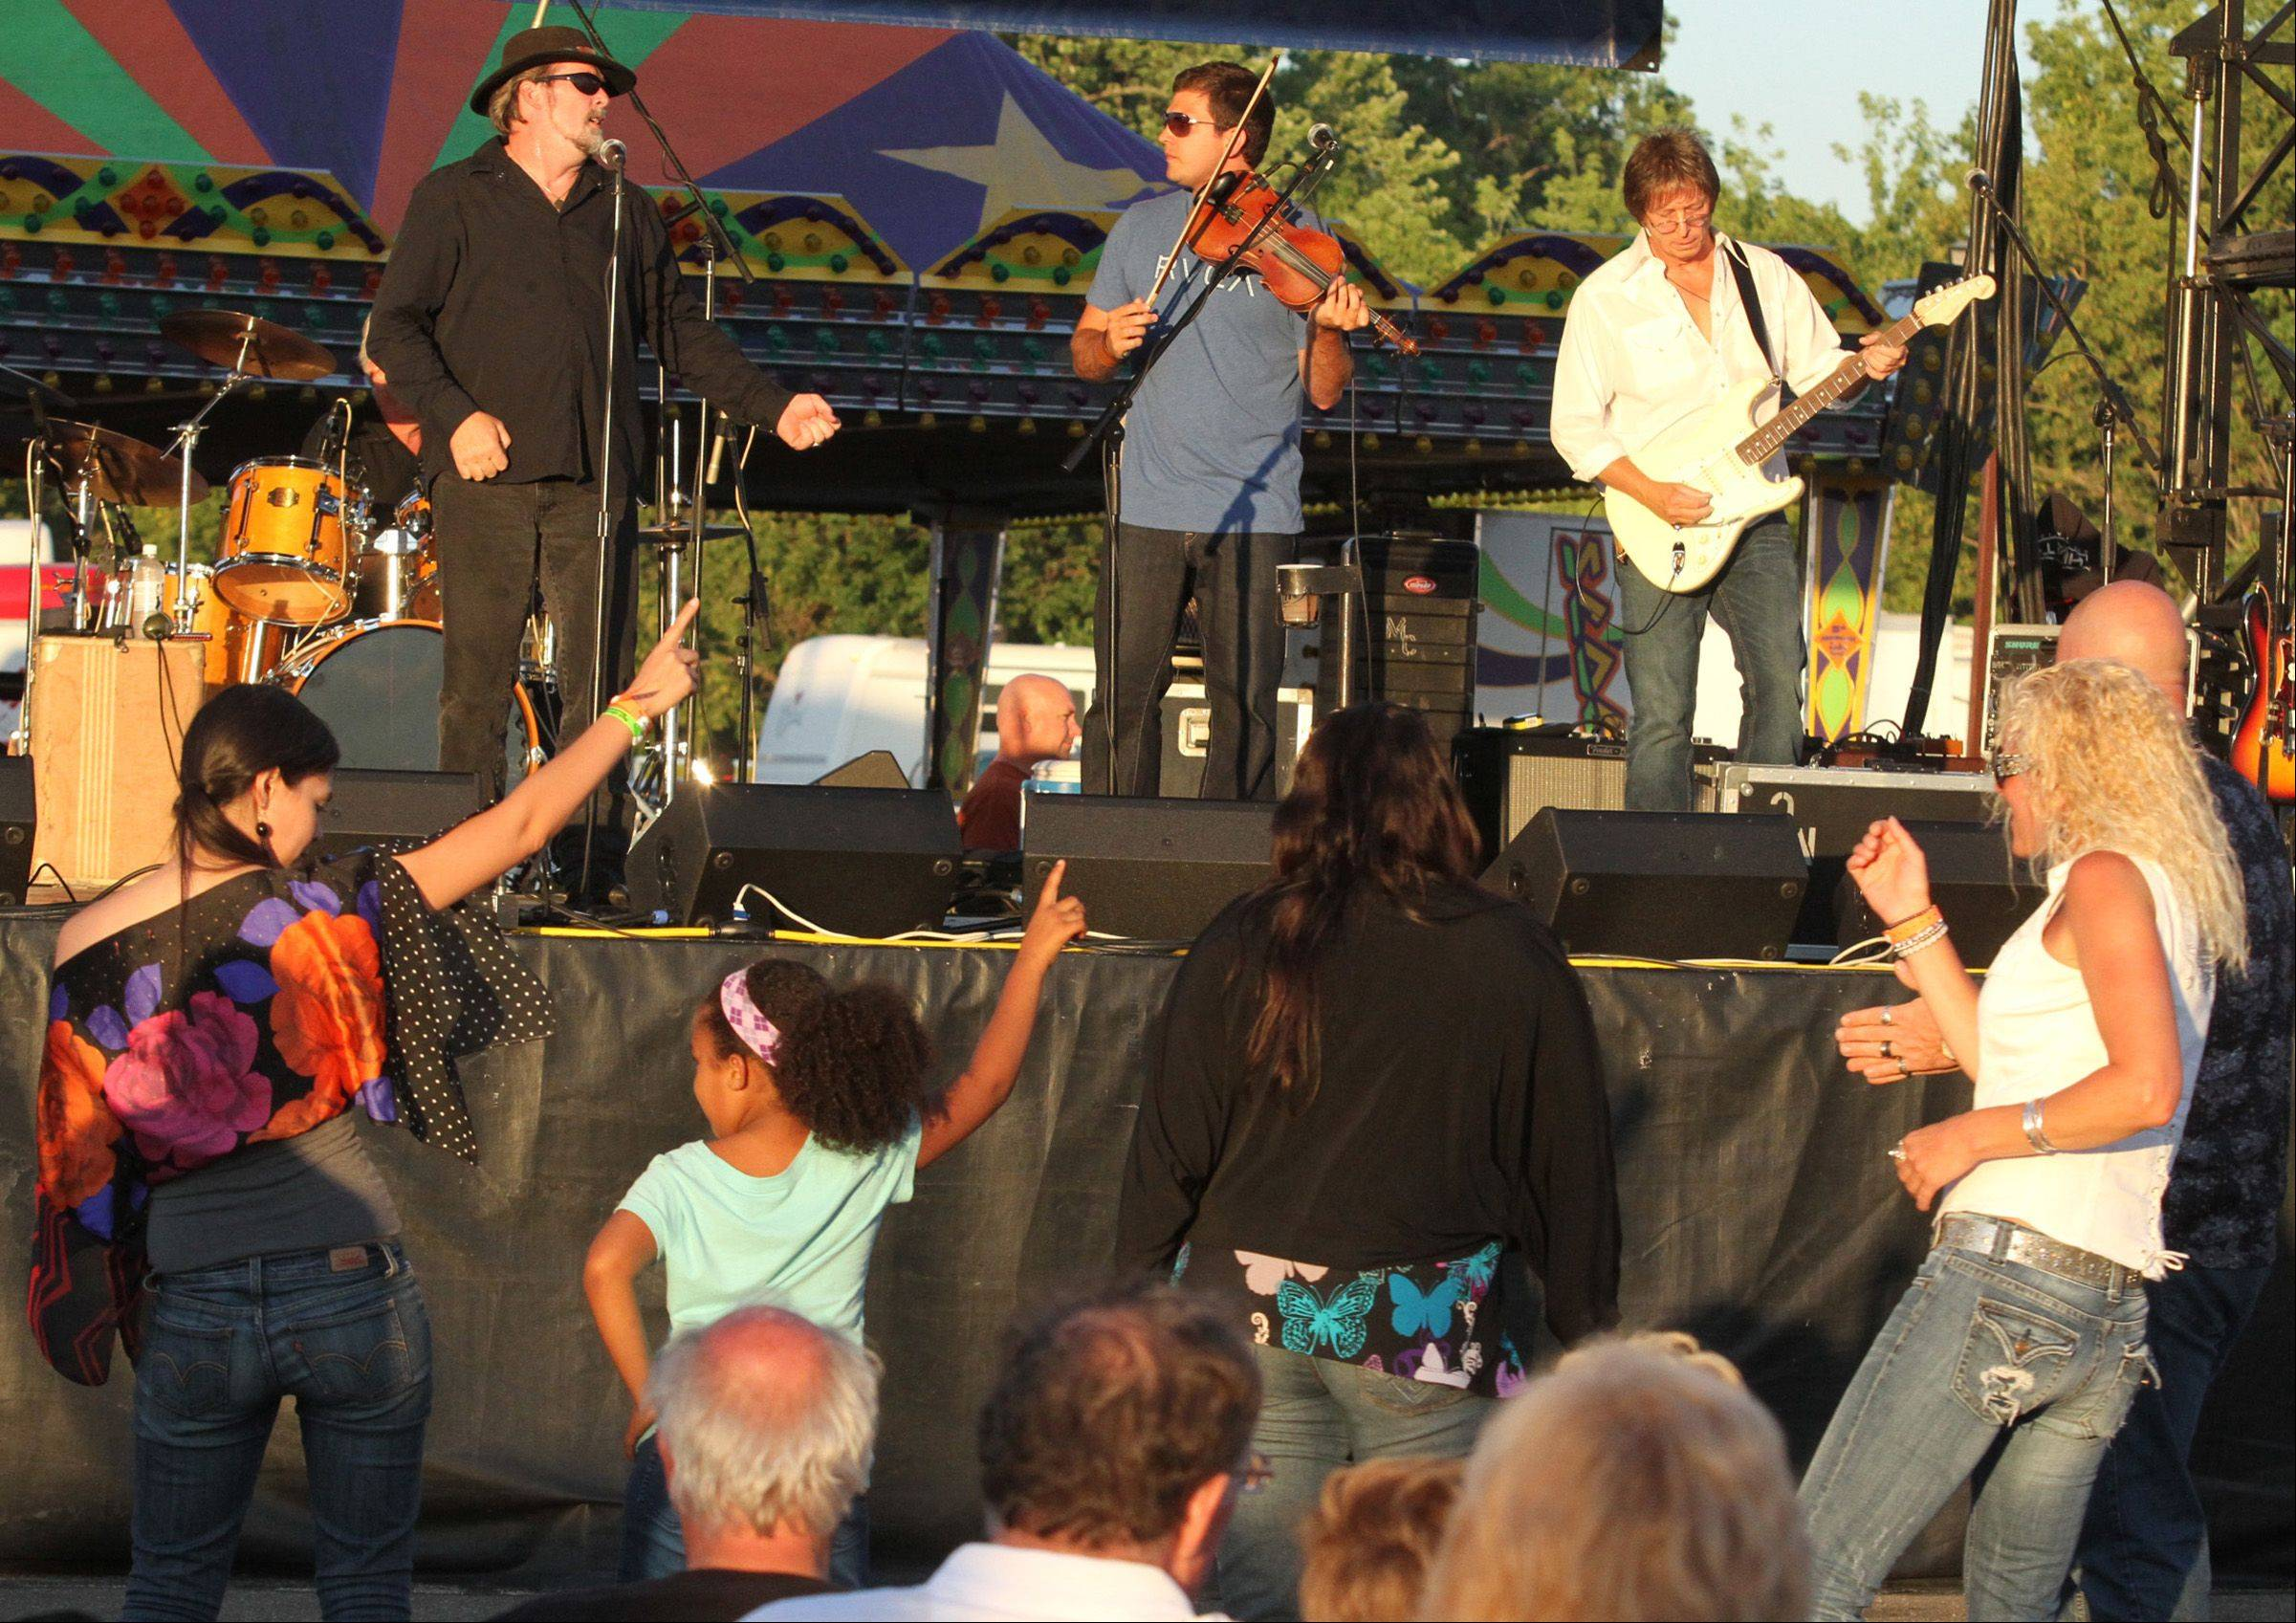 Kevin Purcell & The Nightburners at played at last year�s Wauconda Fest.